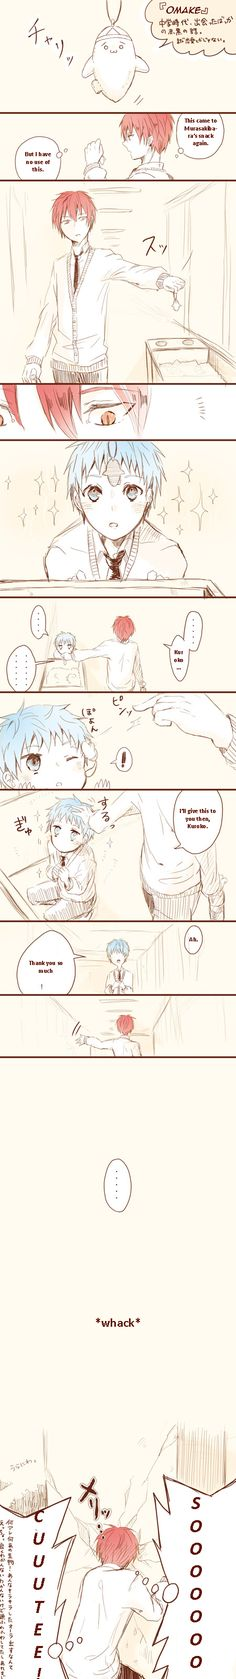 Kuroko sure is lethally adorable here, but at the same time Akashi is almost equally cute for being so fangirly as to walking right into that wall xD